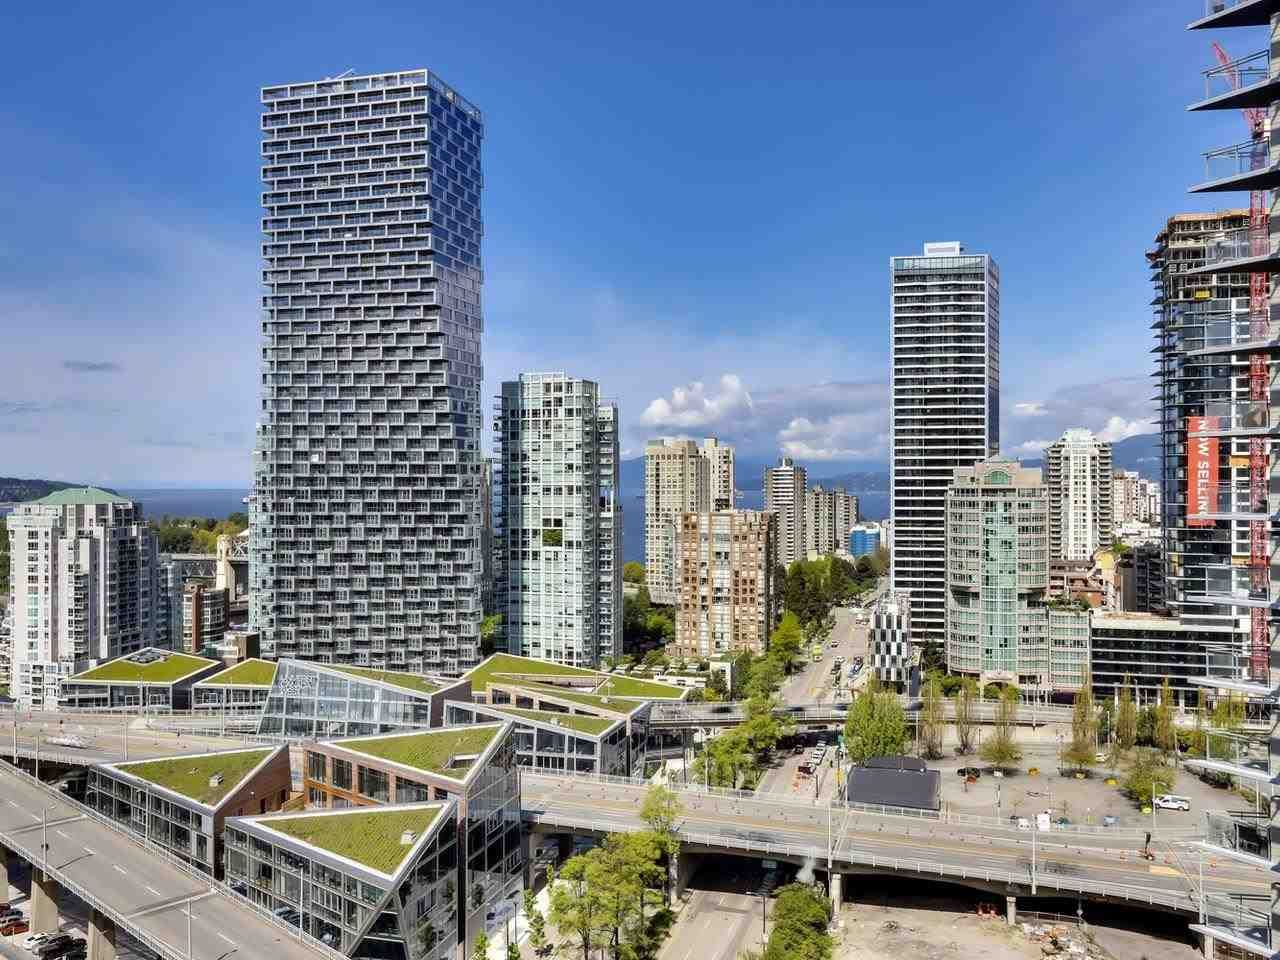 """Main Photo: 2506 501 PACIFIC Street in Vancouver: Downtown VW Condo for sale in """"THE 501"""" (Vancouver West)  : MLS®# R2579990"""